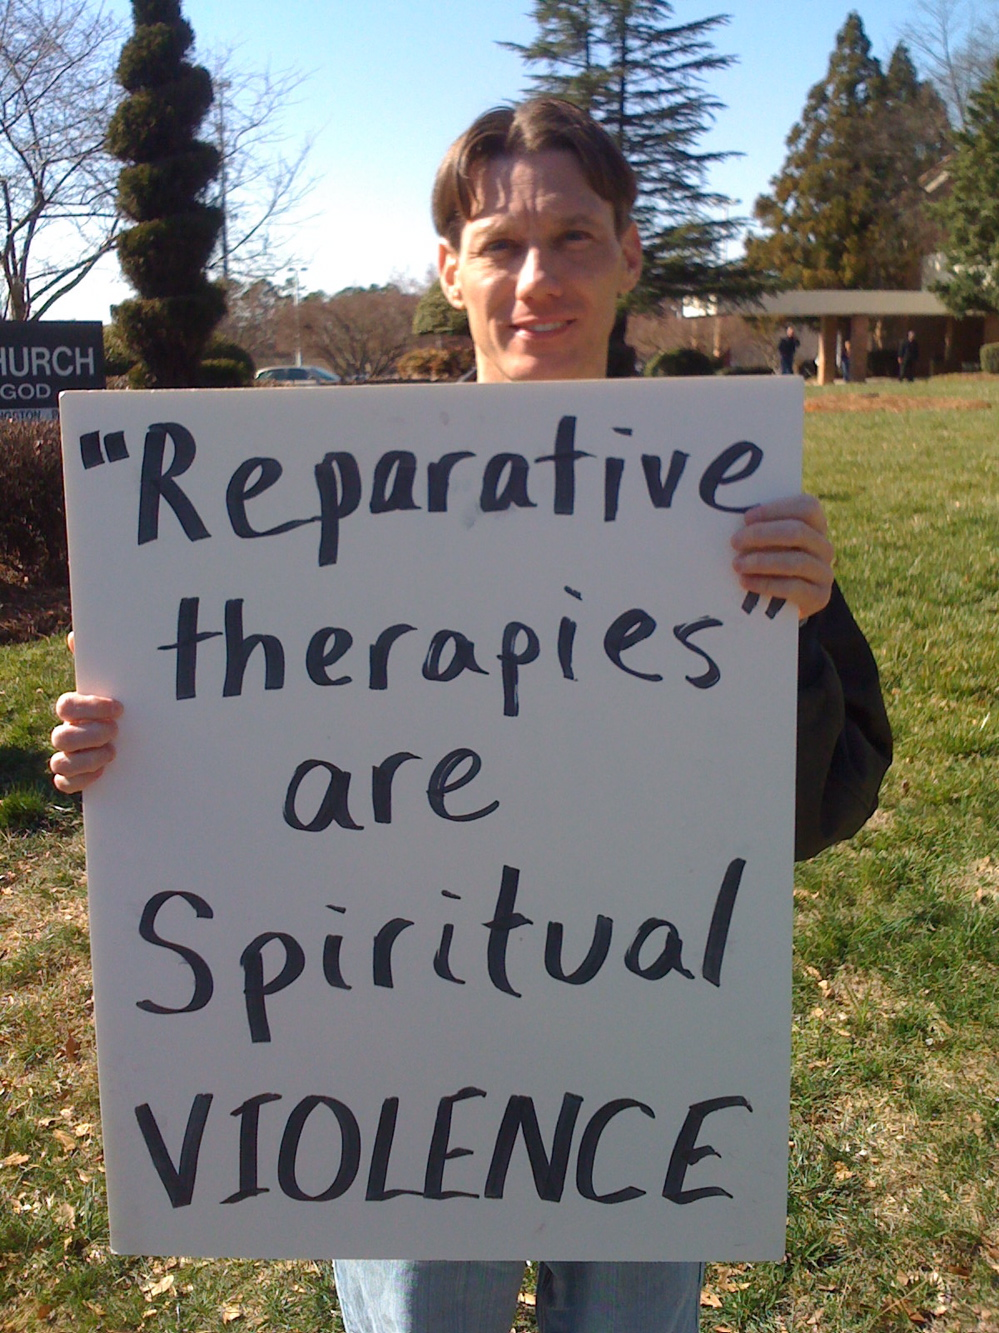 Reparative+Therapy+Violence Adult Video News even named him the No. 1 porn star of all time.